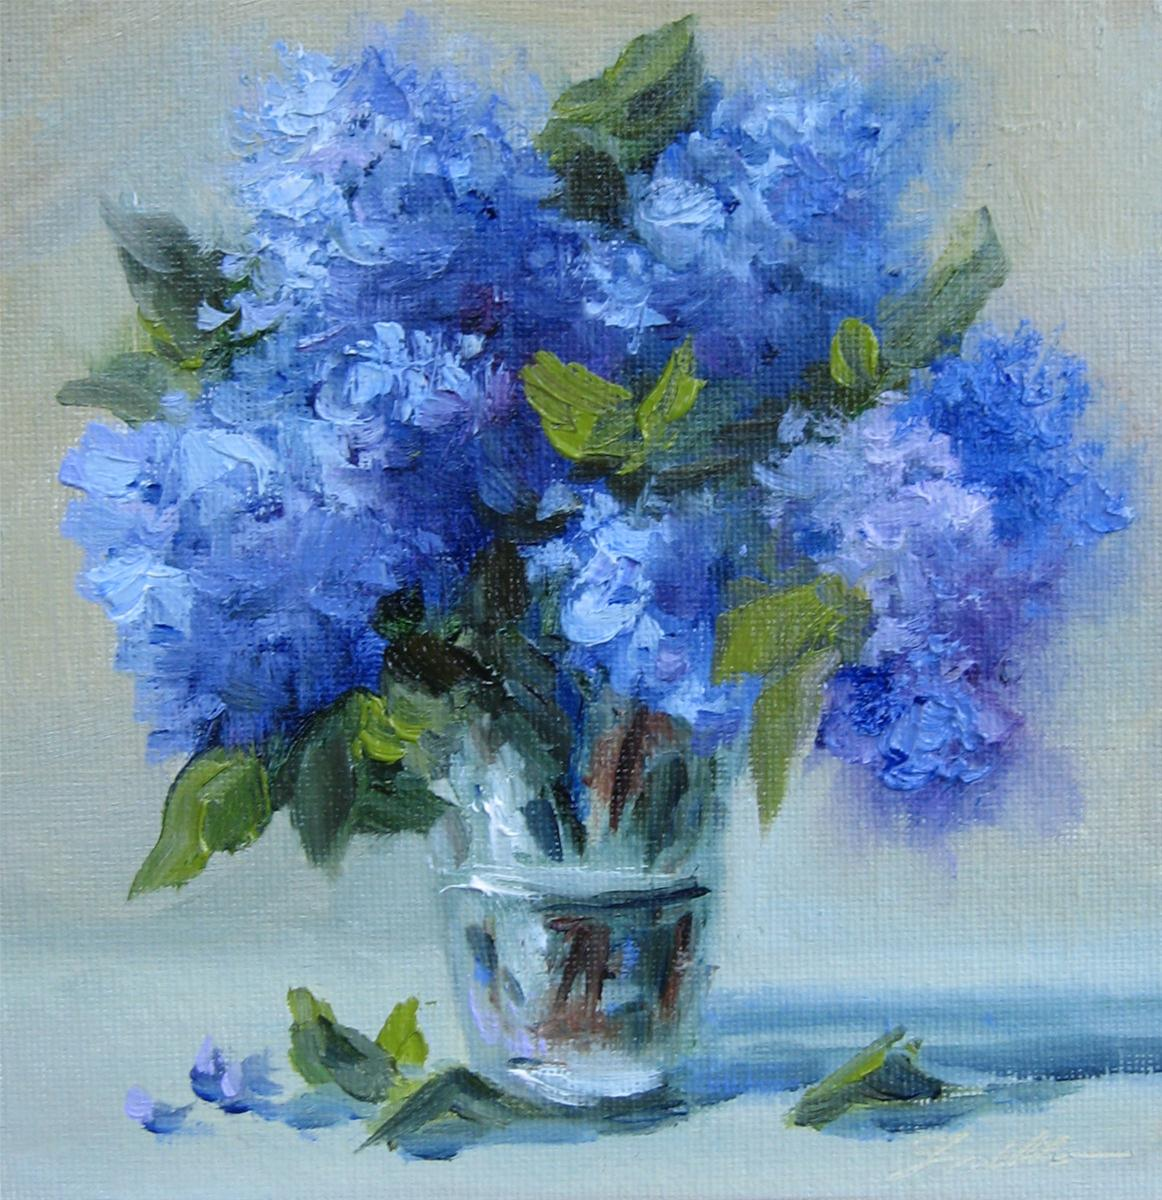 """Flower Study #26 Blue Hydrangeas in a glass vase"" original fine art by Pat Fiorello"